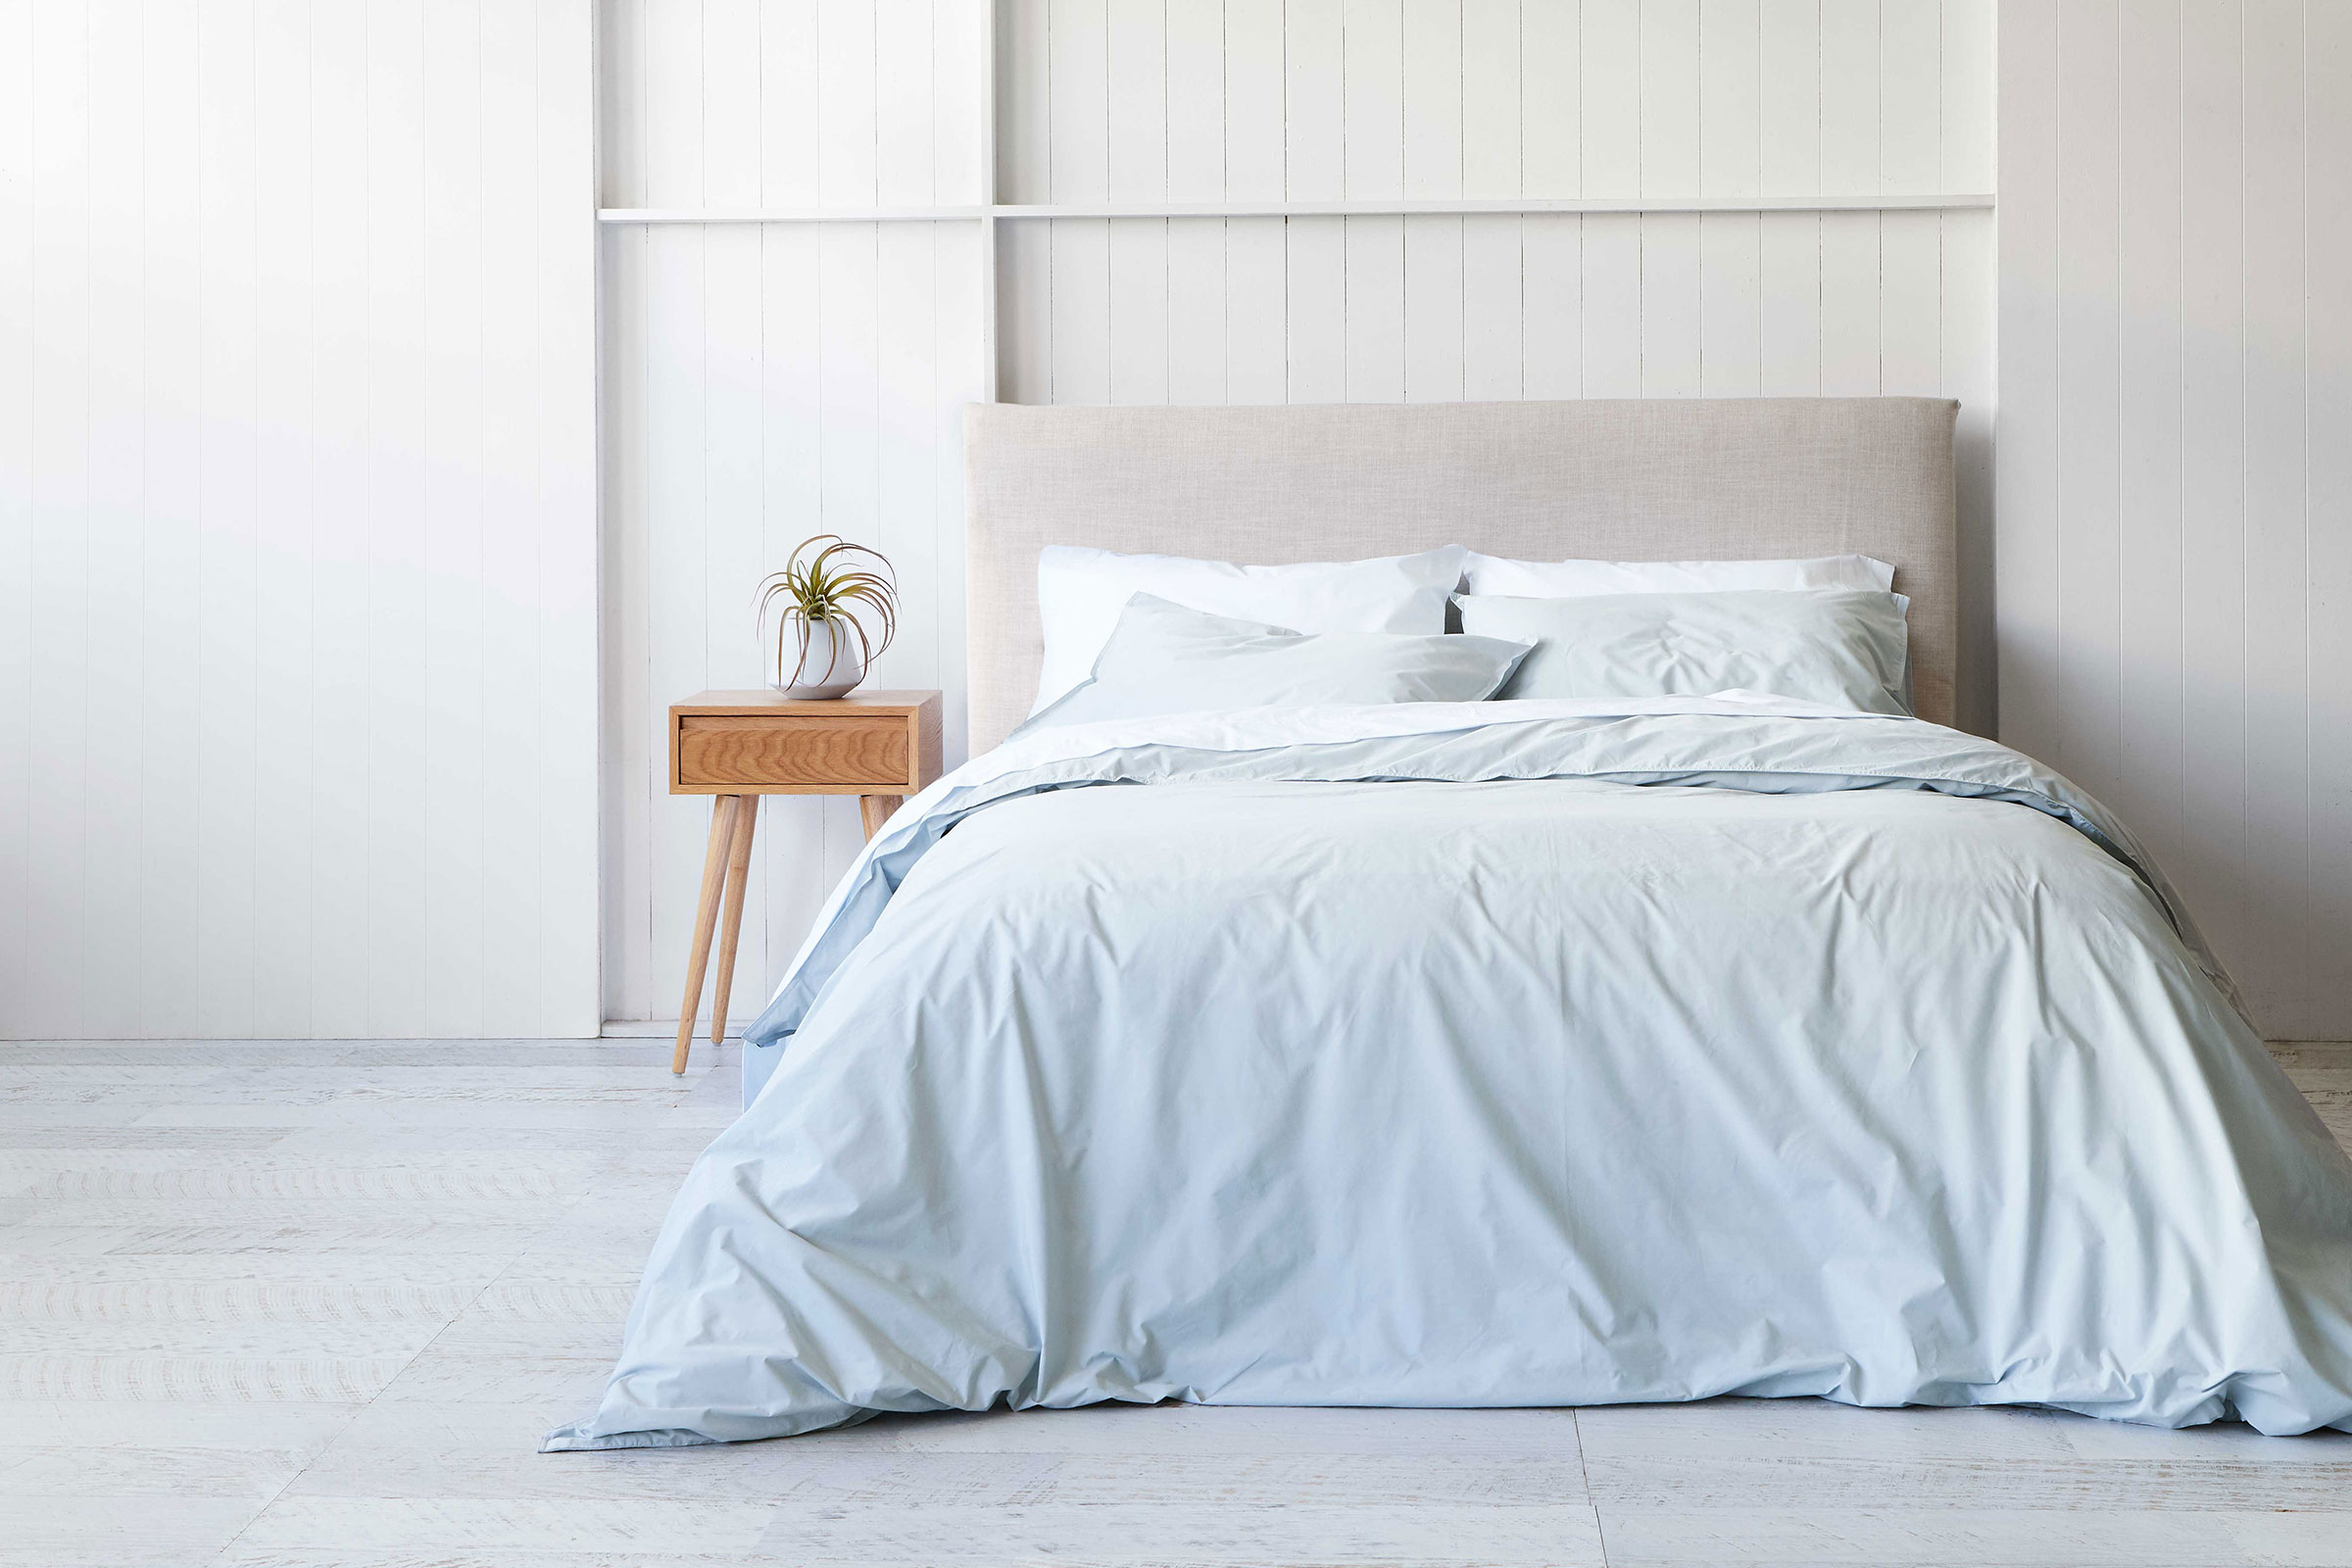 Crisp Cotton Bedding From A New Local Brand | Sheet Theory